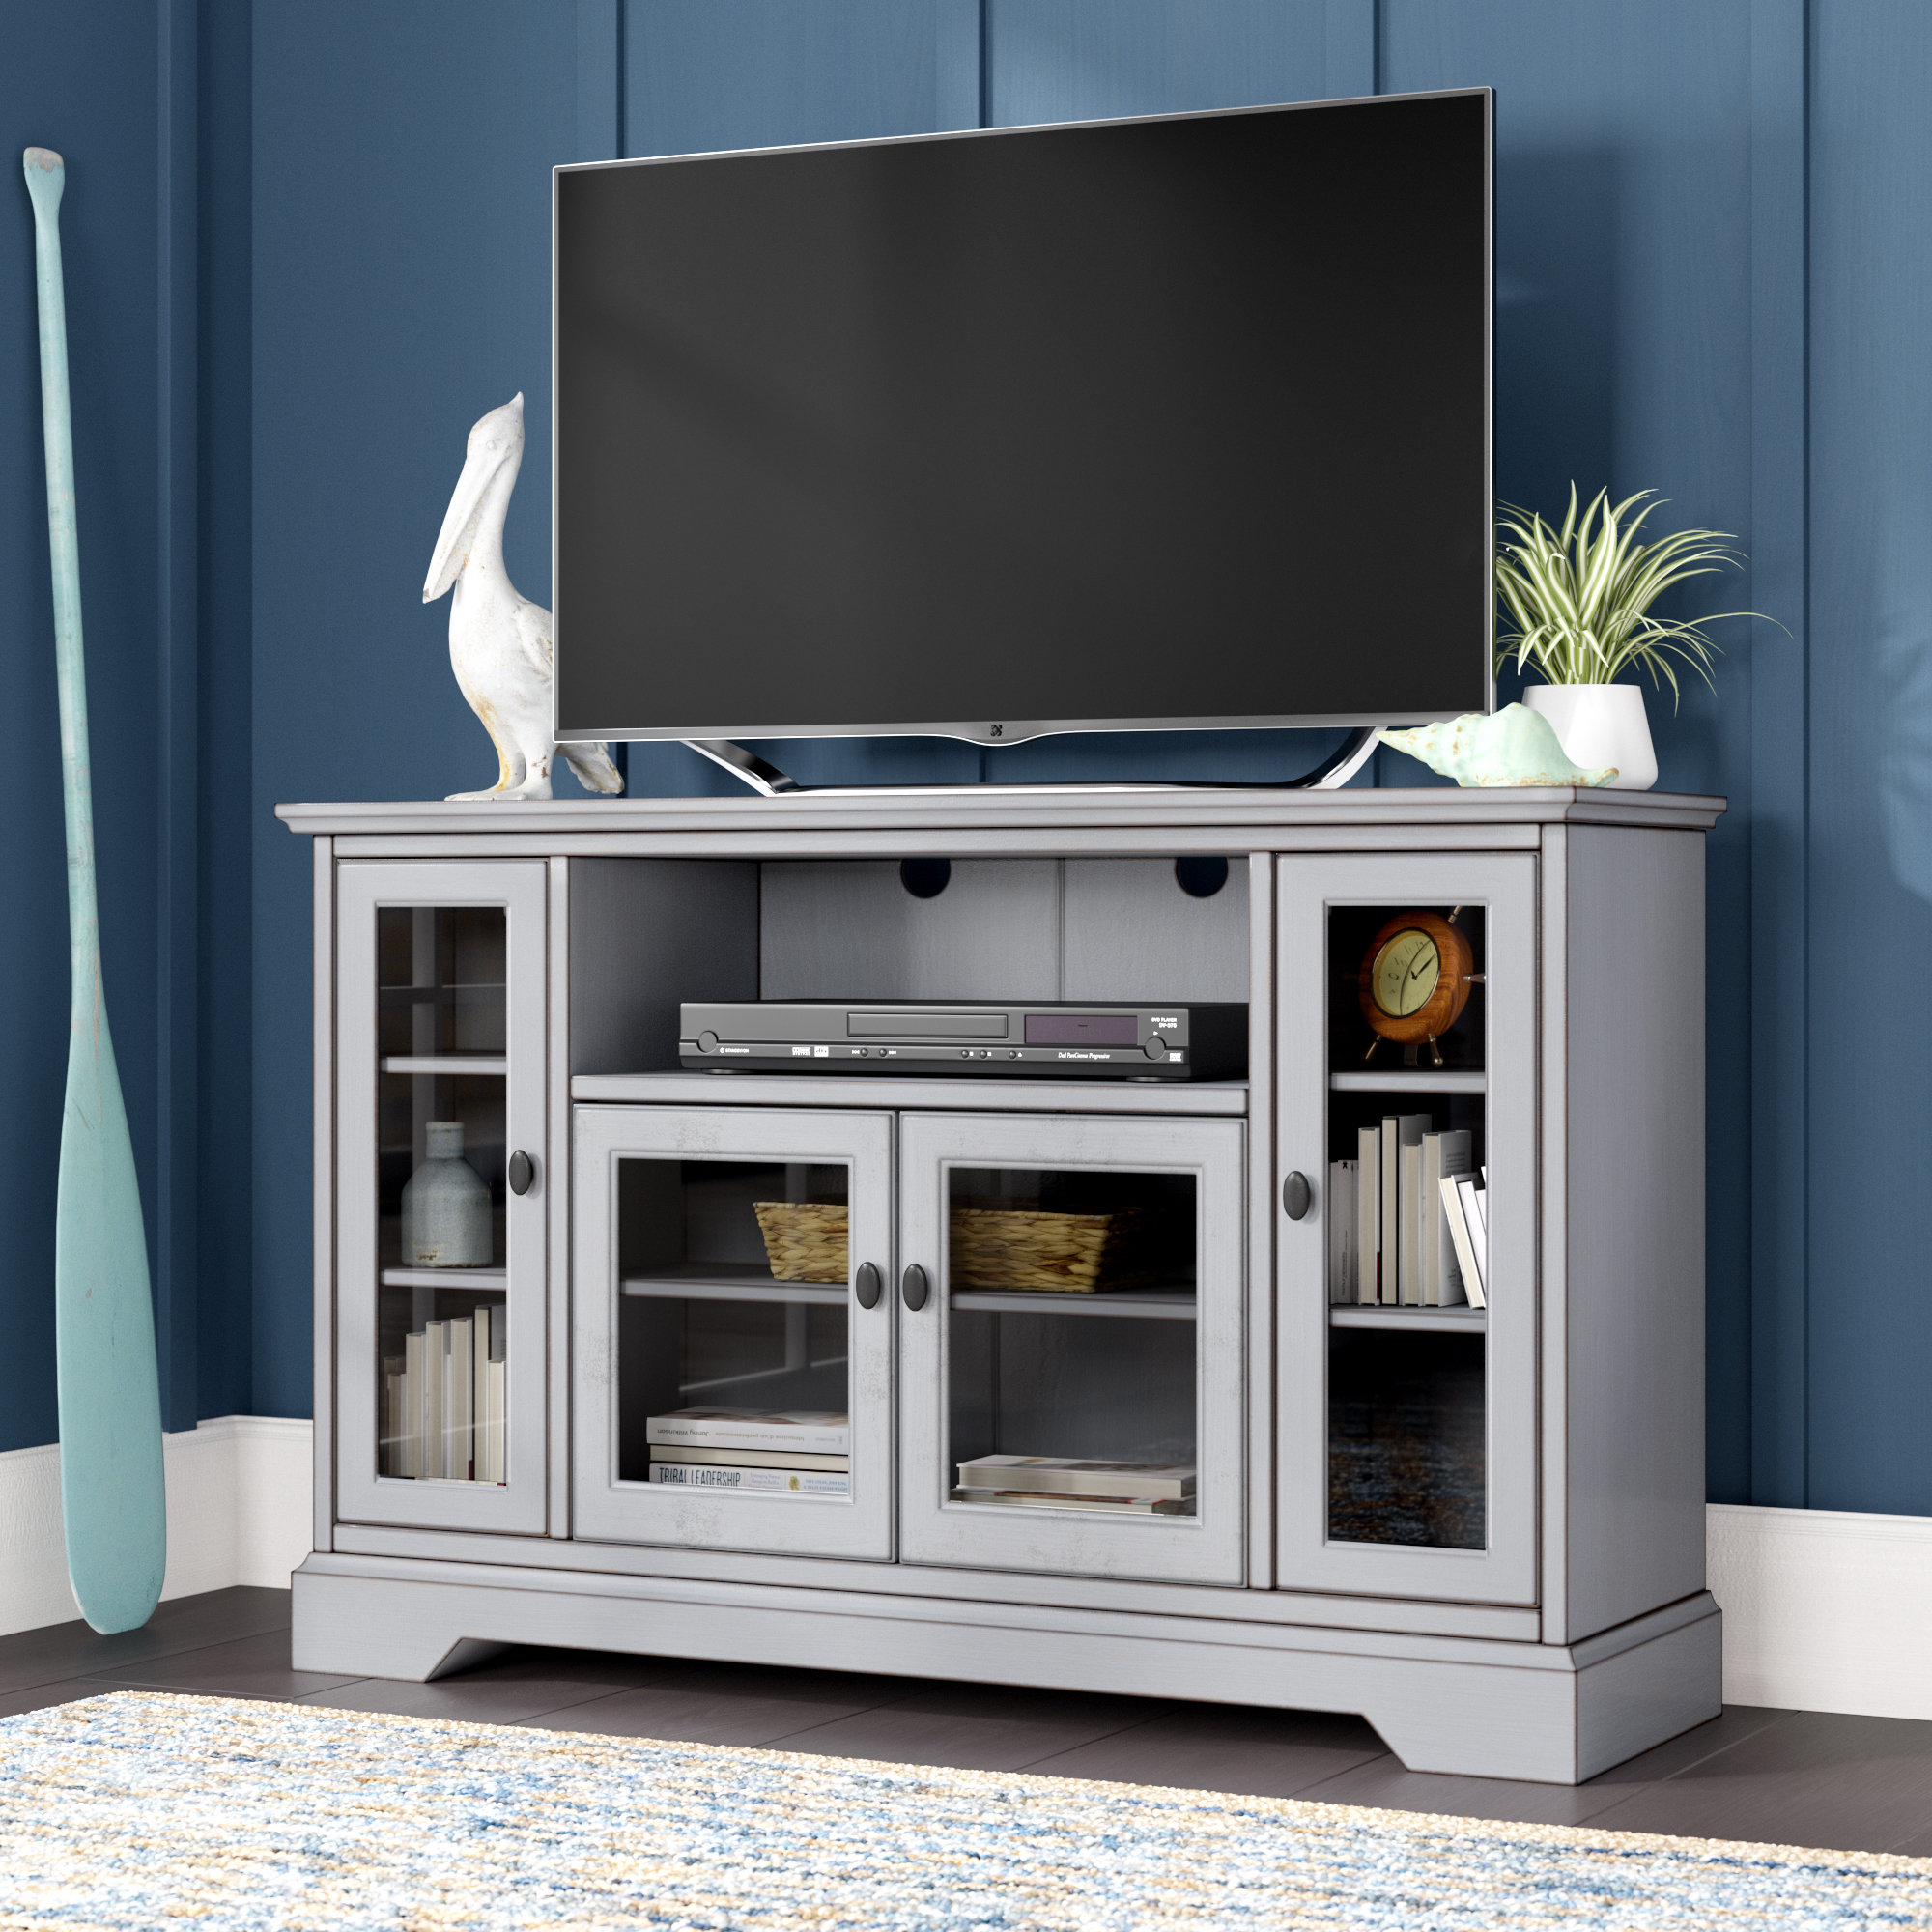 Tall Narrow Tv Stand | Wayfair Throughout Edwin Grey 64 Inch Tv Stands (View 6 of 30)